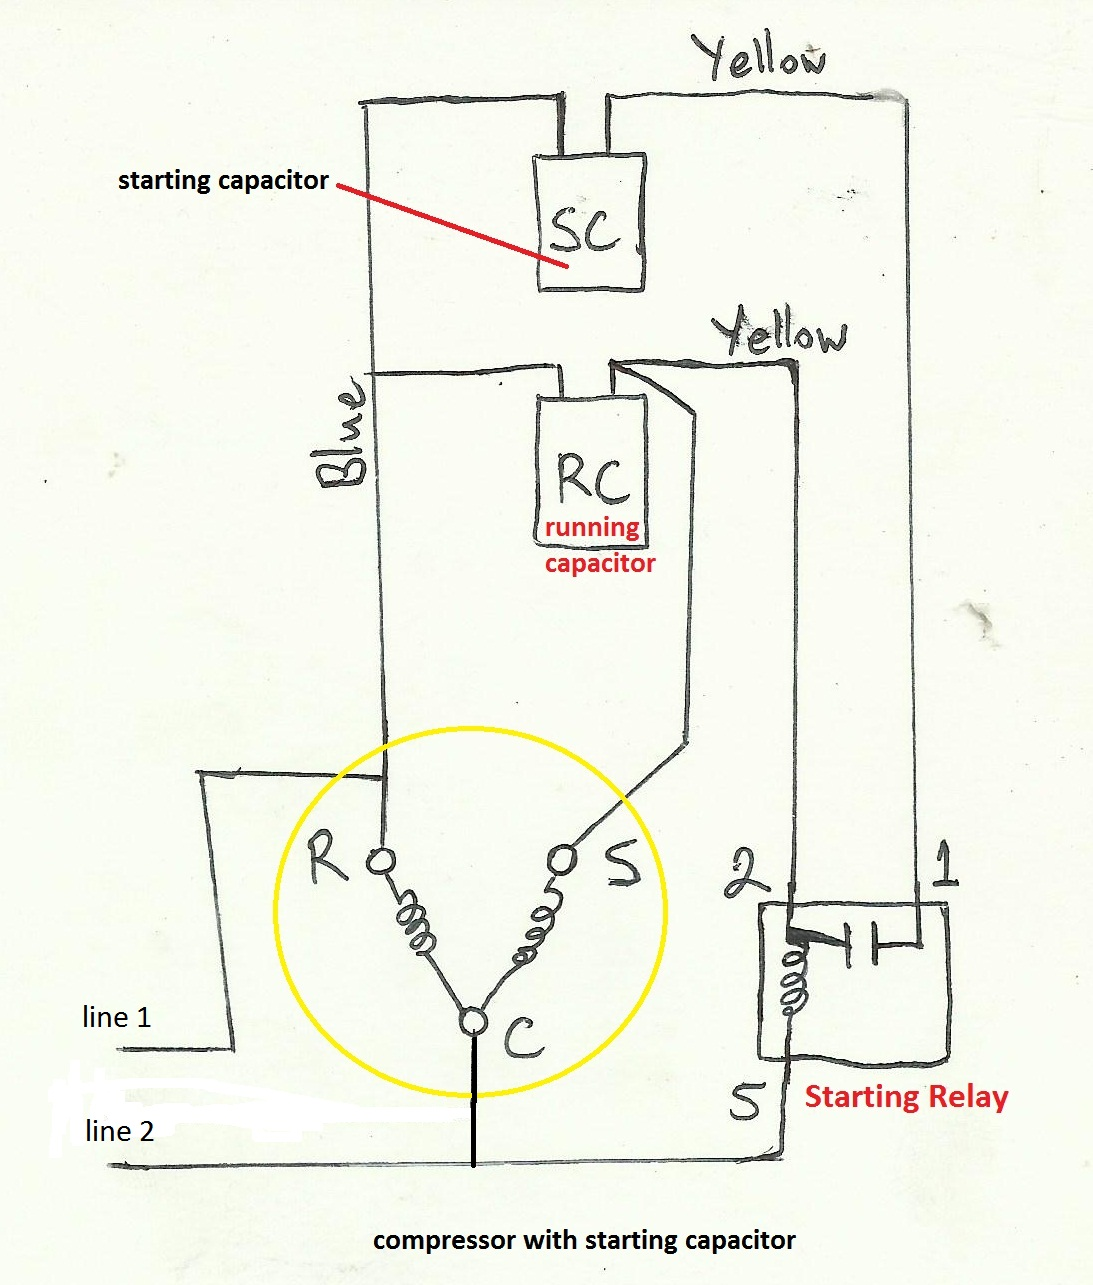 ... 14+staritn hvac how to replace the run capacitor in the compressor unit  compressor hard refrigeration and air conditioning repair wiring diagram ...